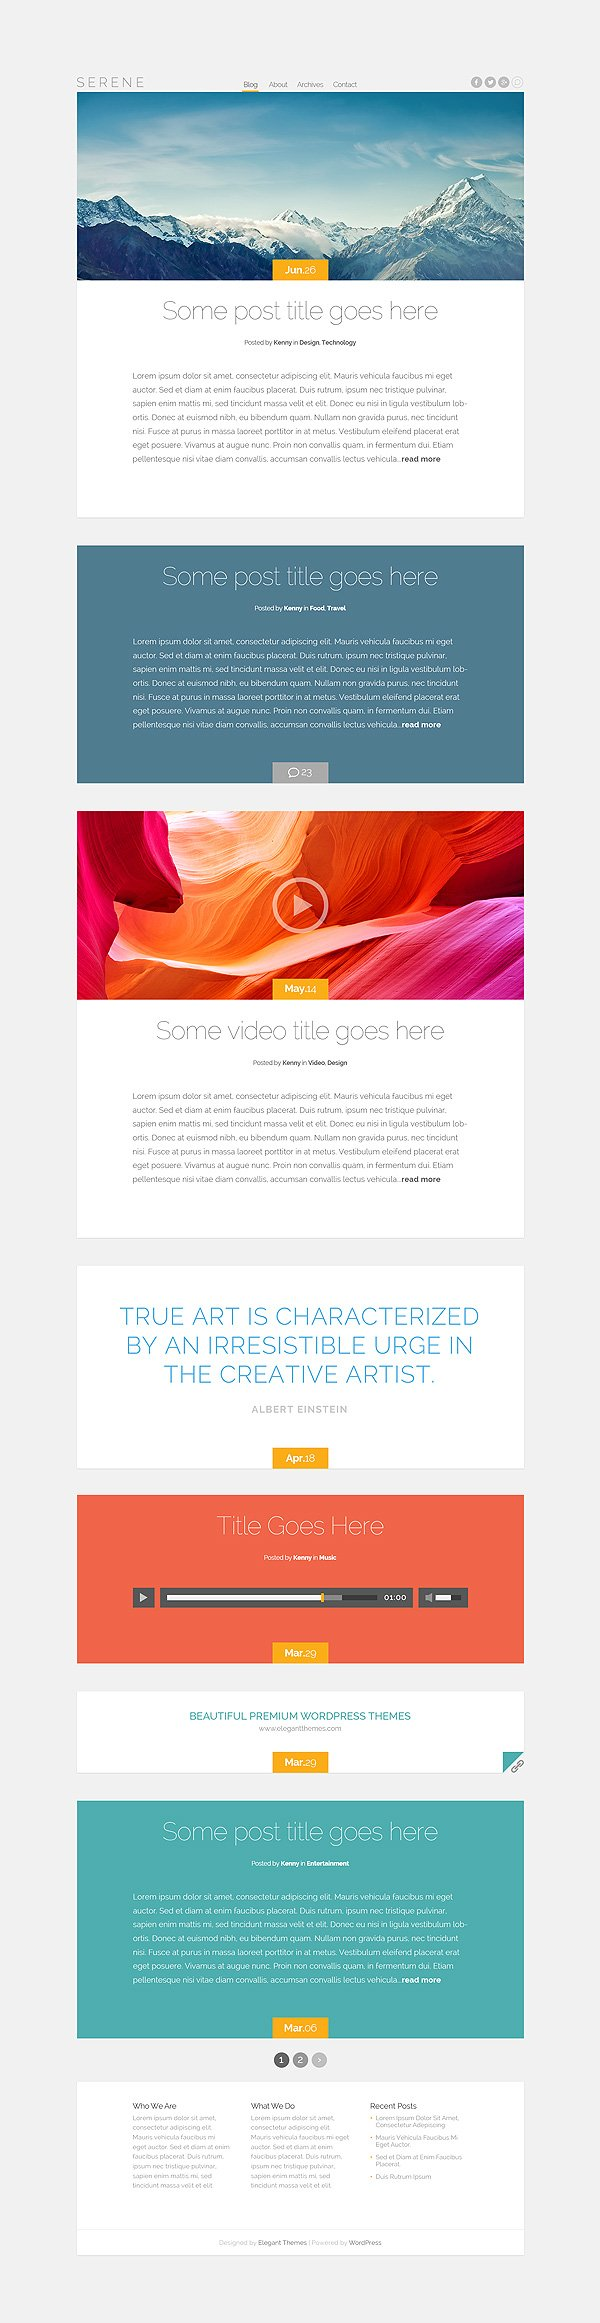 Cara Edit Template Wordpress : template, wordpress, Serene, Graceful, Blogging, Theme, Format, Support, Elegant, Themes